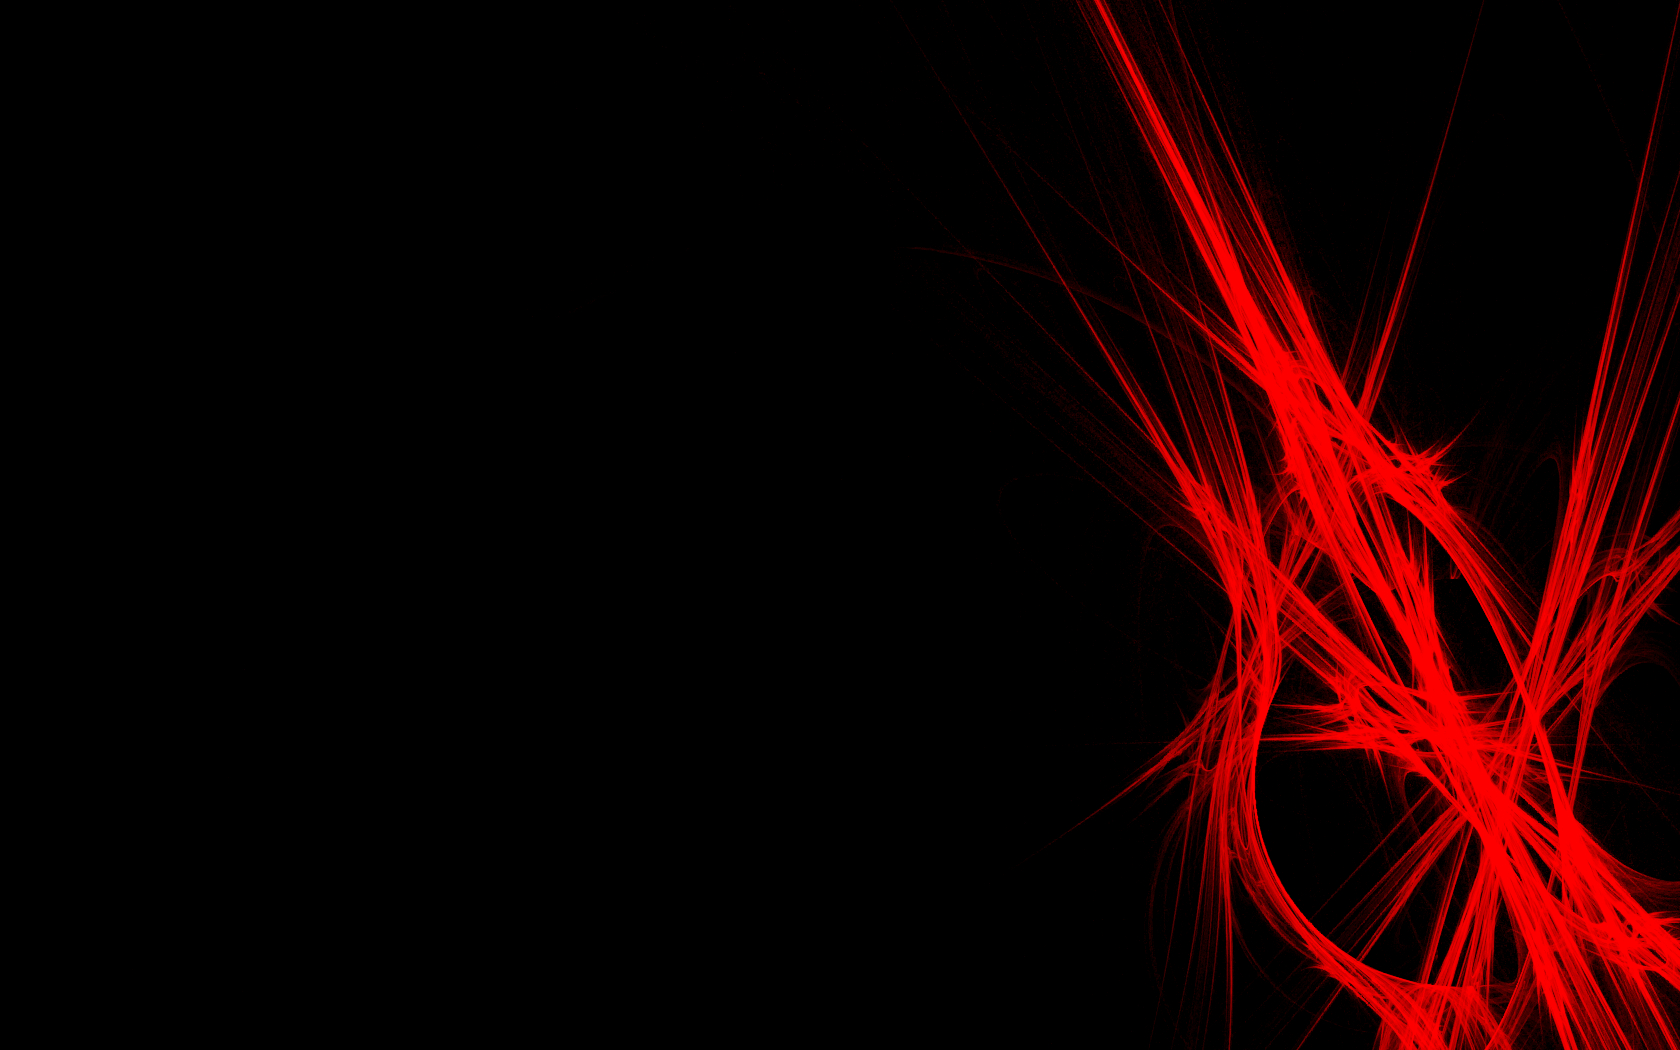 Red background black white by xfecal facex jpg Black Background and 1680x1050